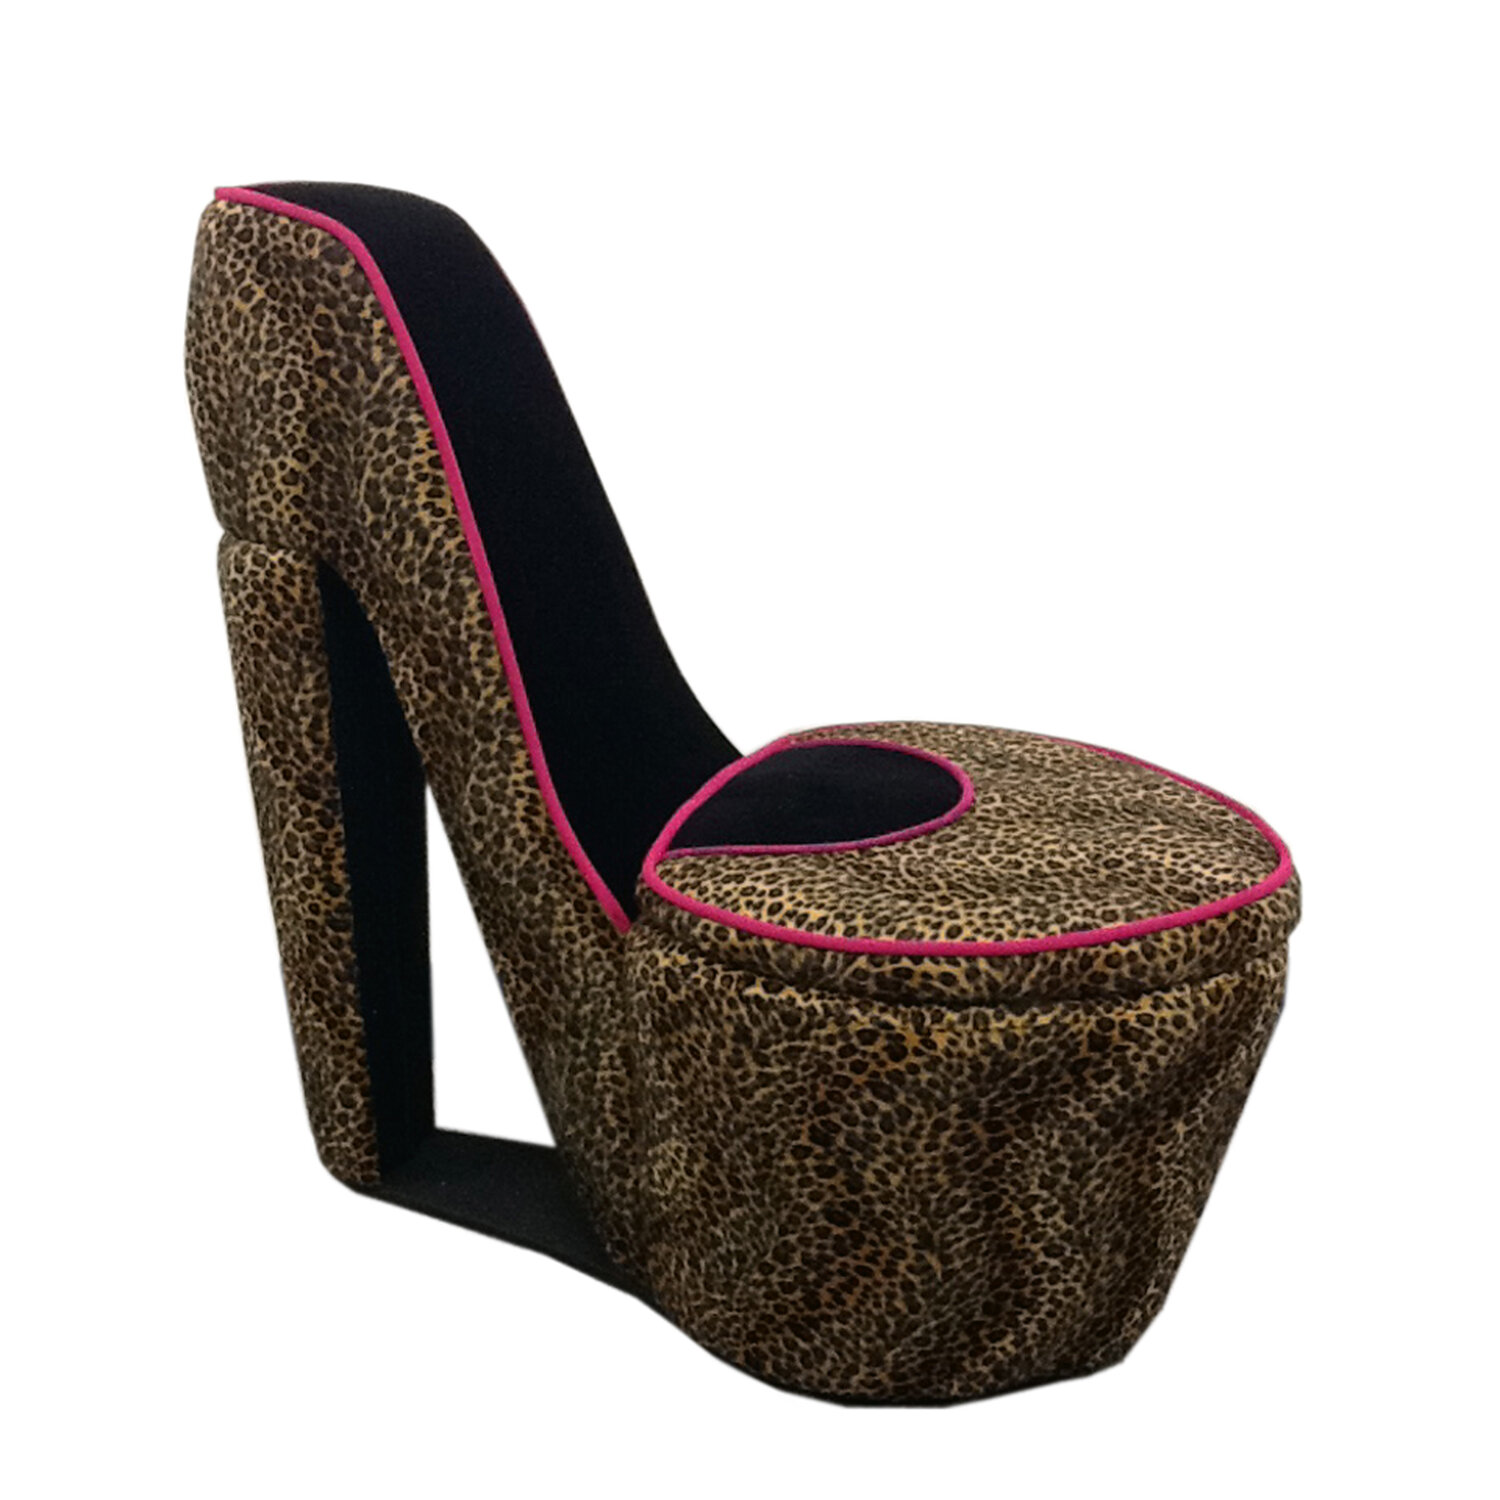 ORE Furniture High Heel Storage Lounge Chair U0026 Reviews | Wayfair